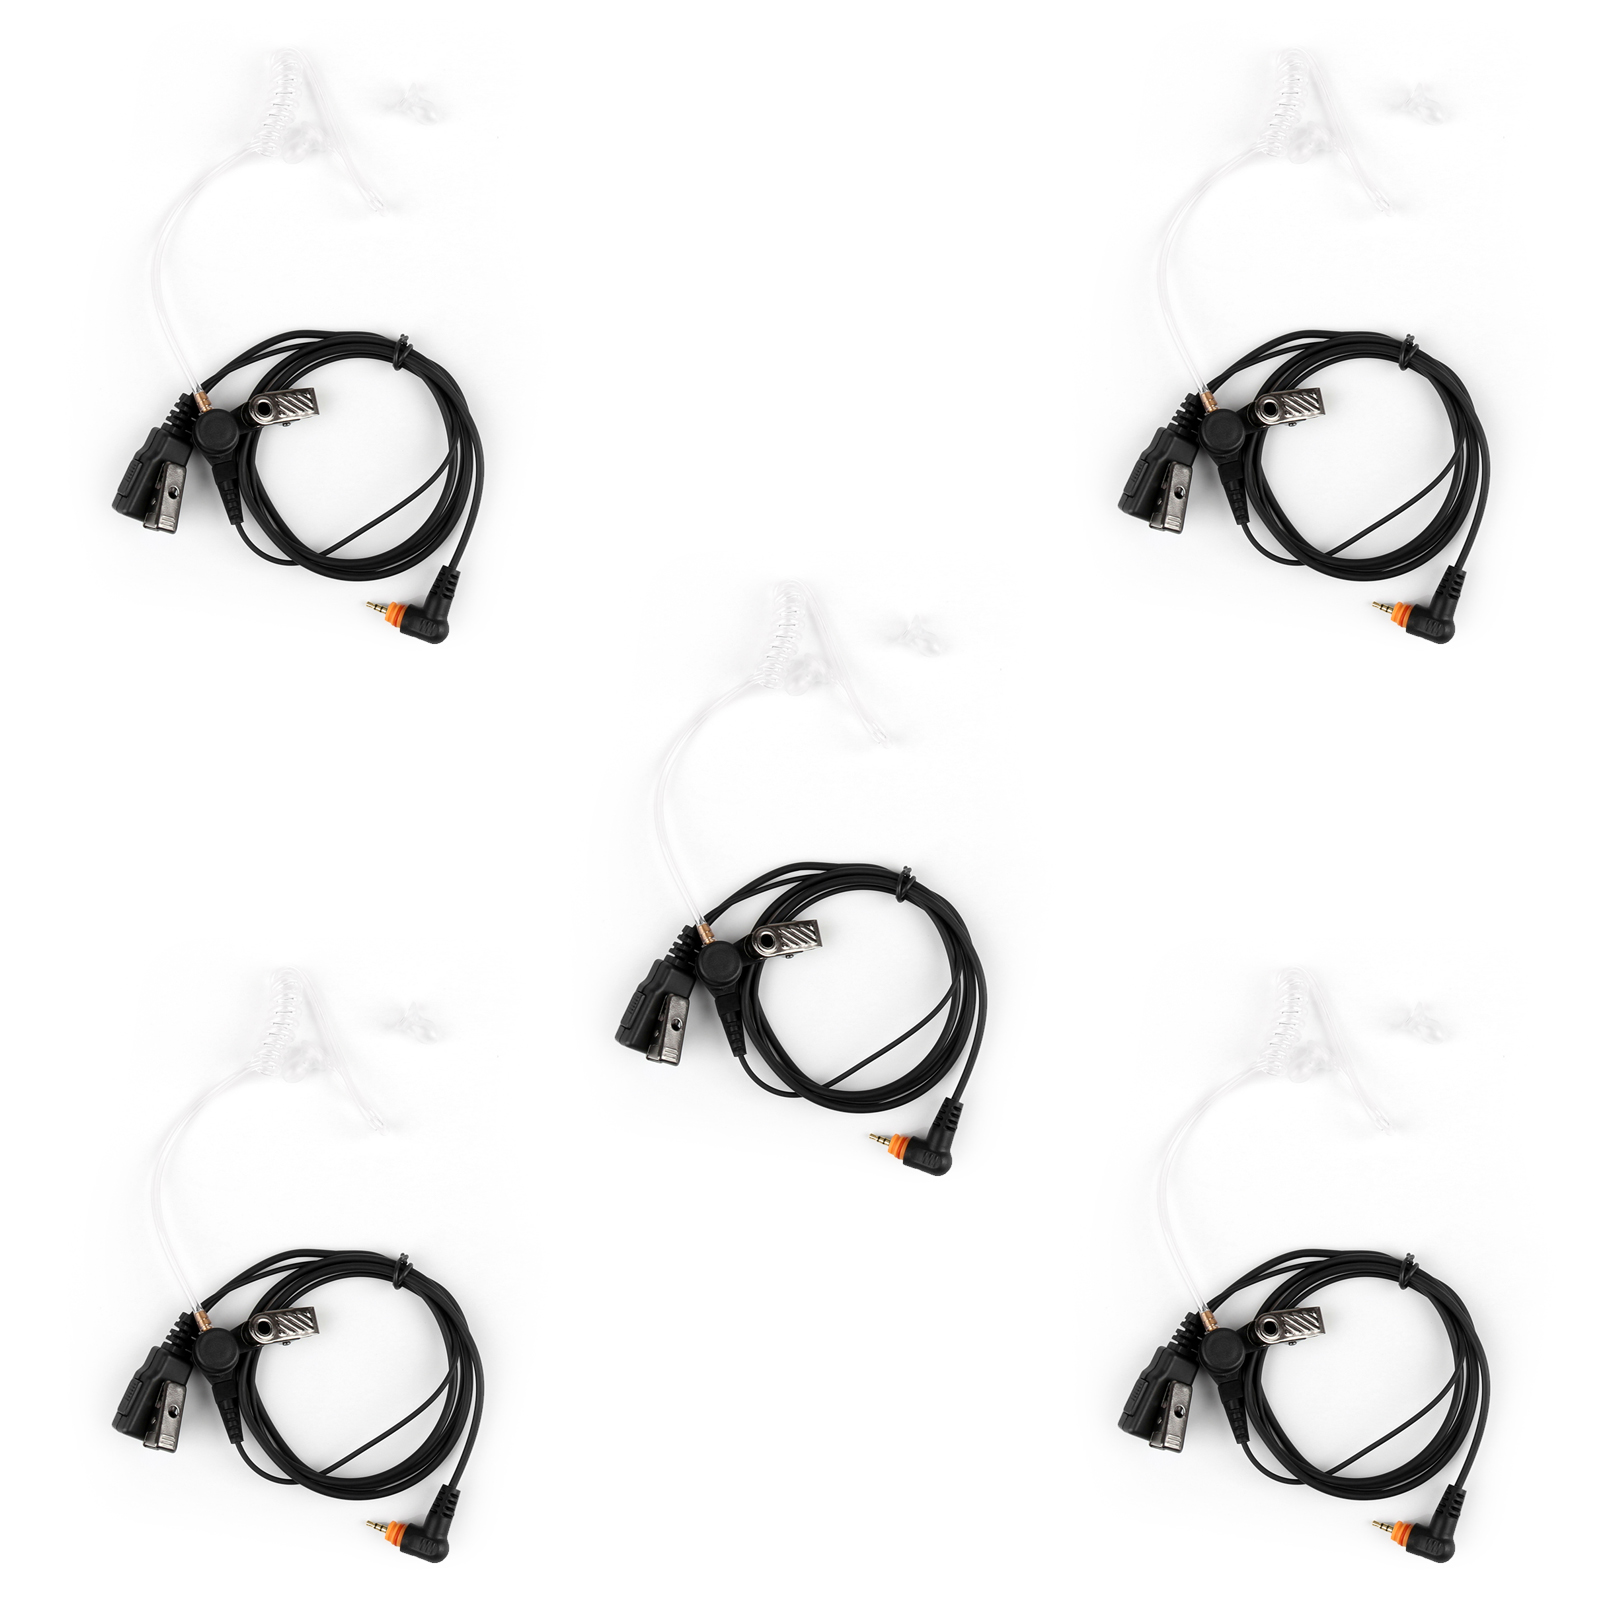 5x Covert Acoustic Tube Earpiece Headset Ptt For Motorola